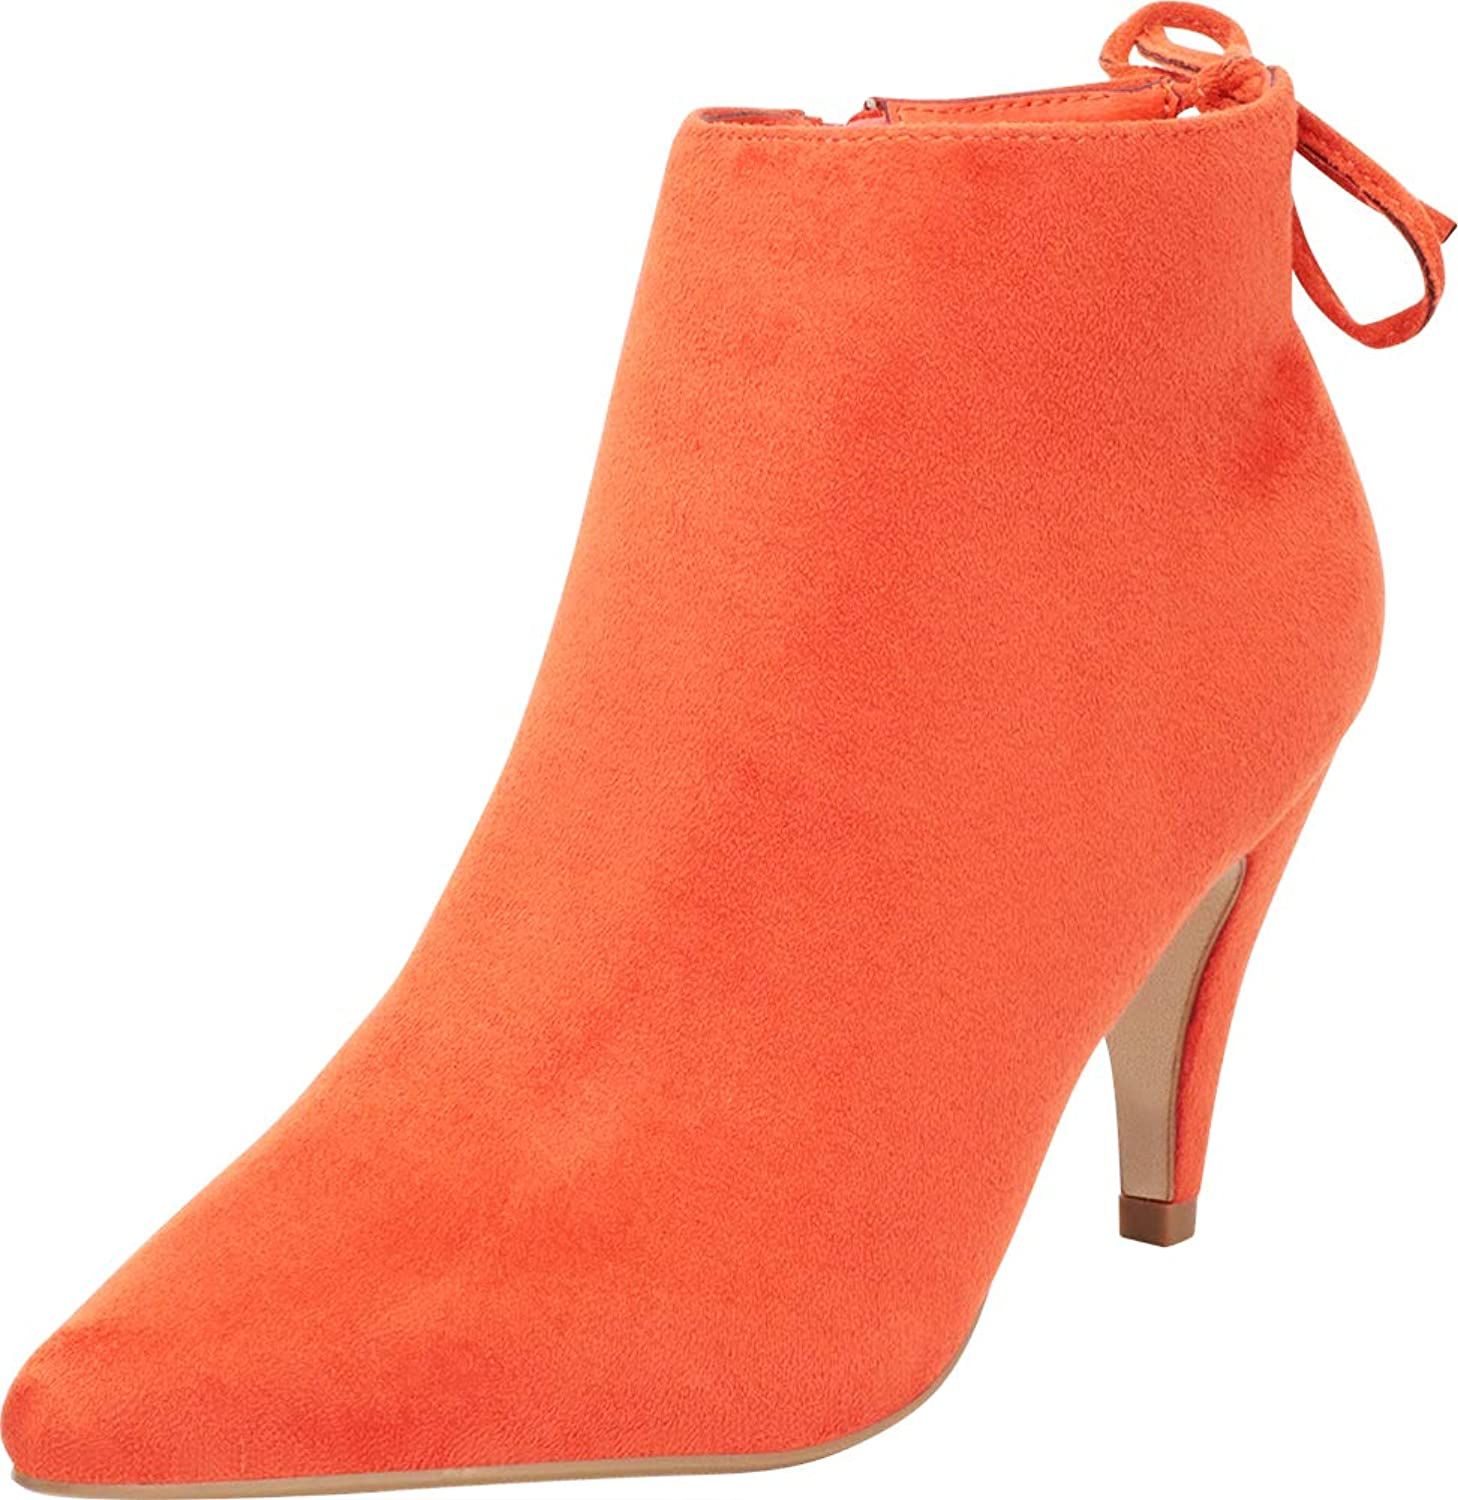 Cambridge Select Women's Pointed Toe Back Tie Mid Heel Ankle Bootie